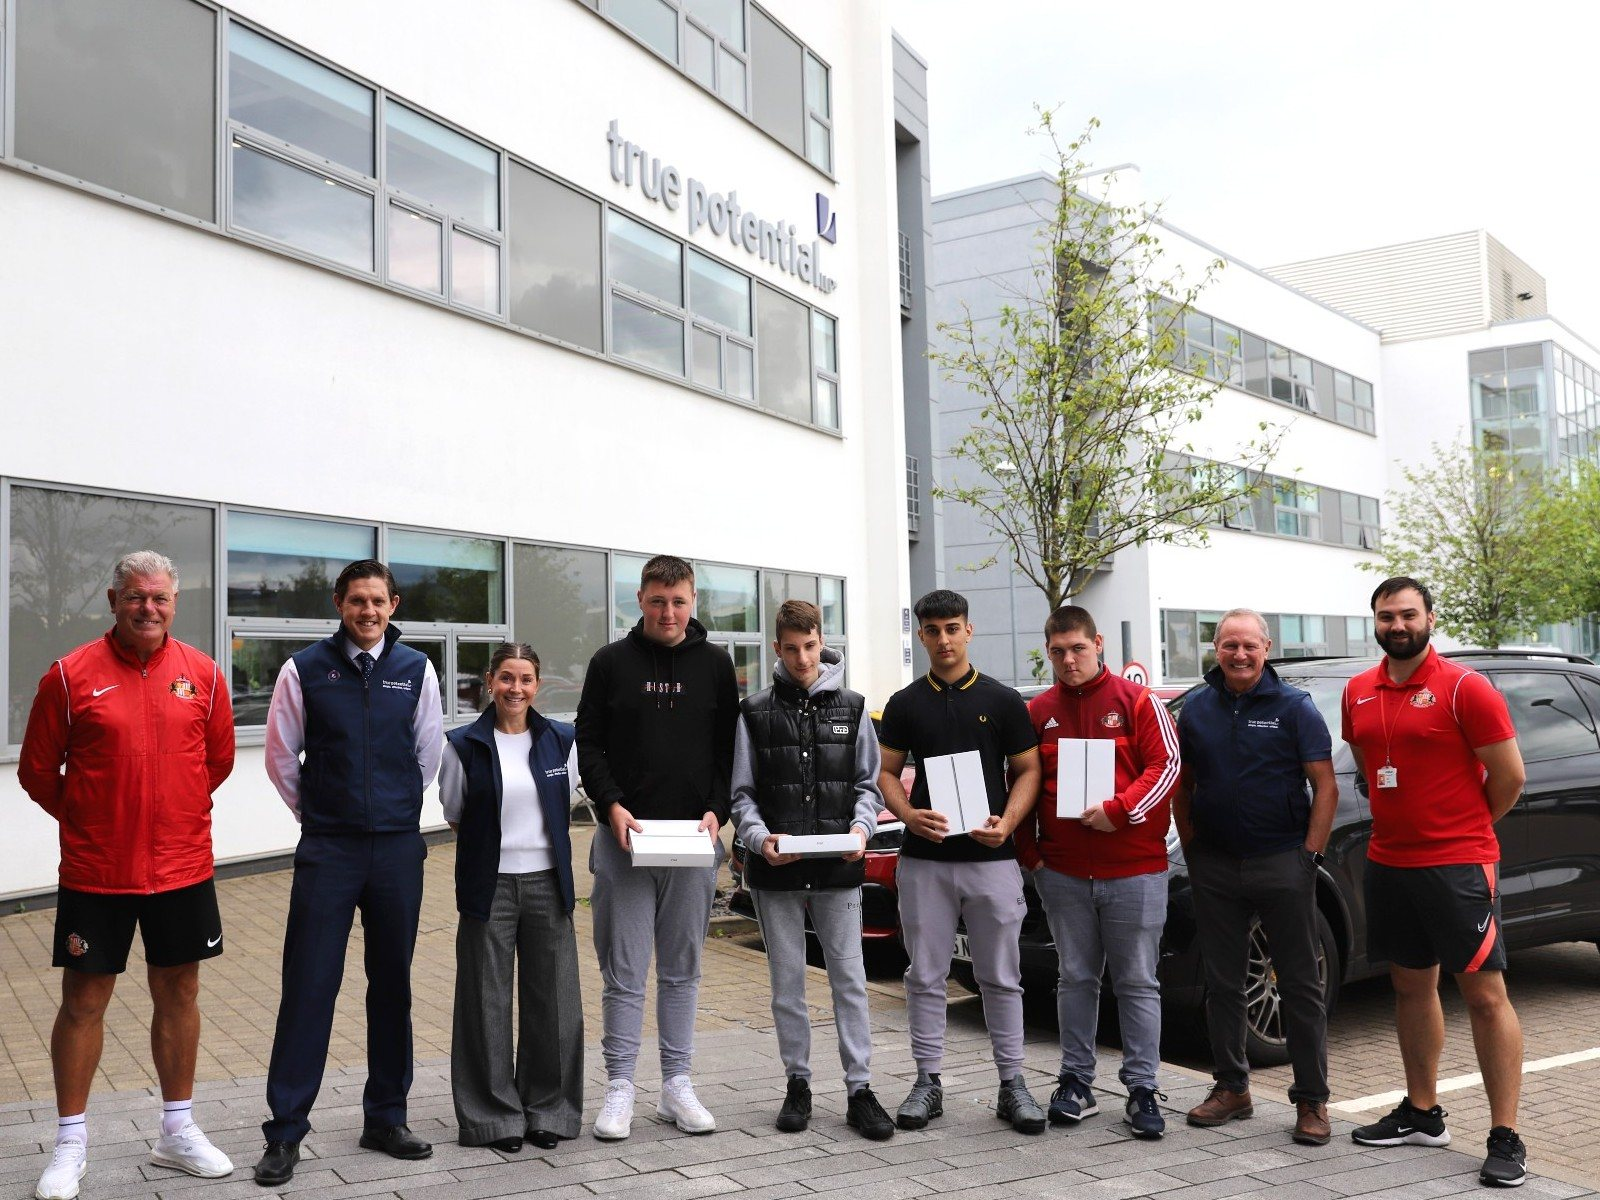 Harrison Centre Learners discover their True Potential